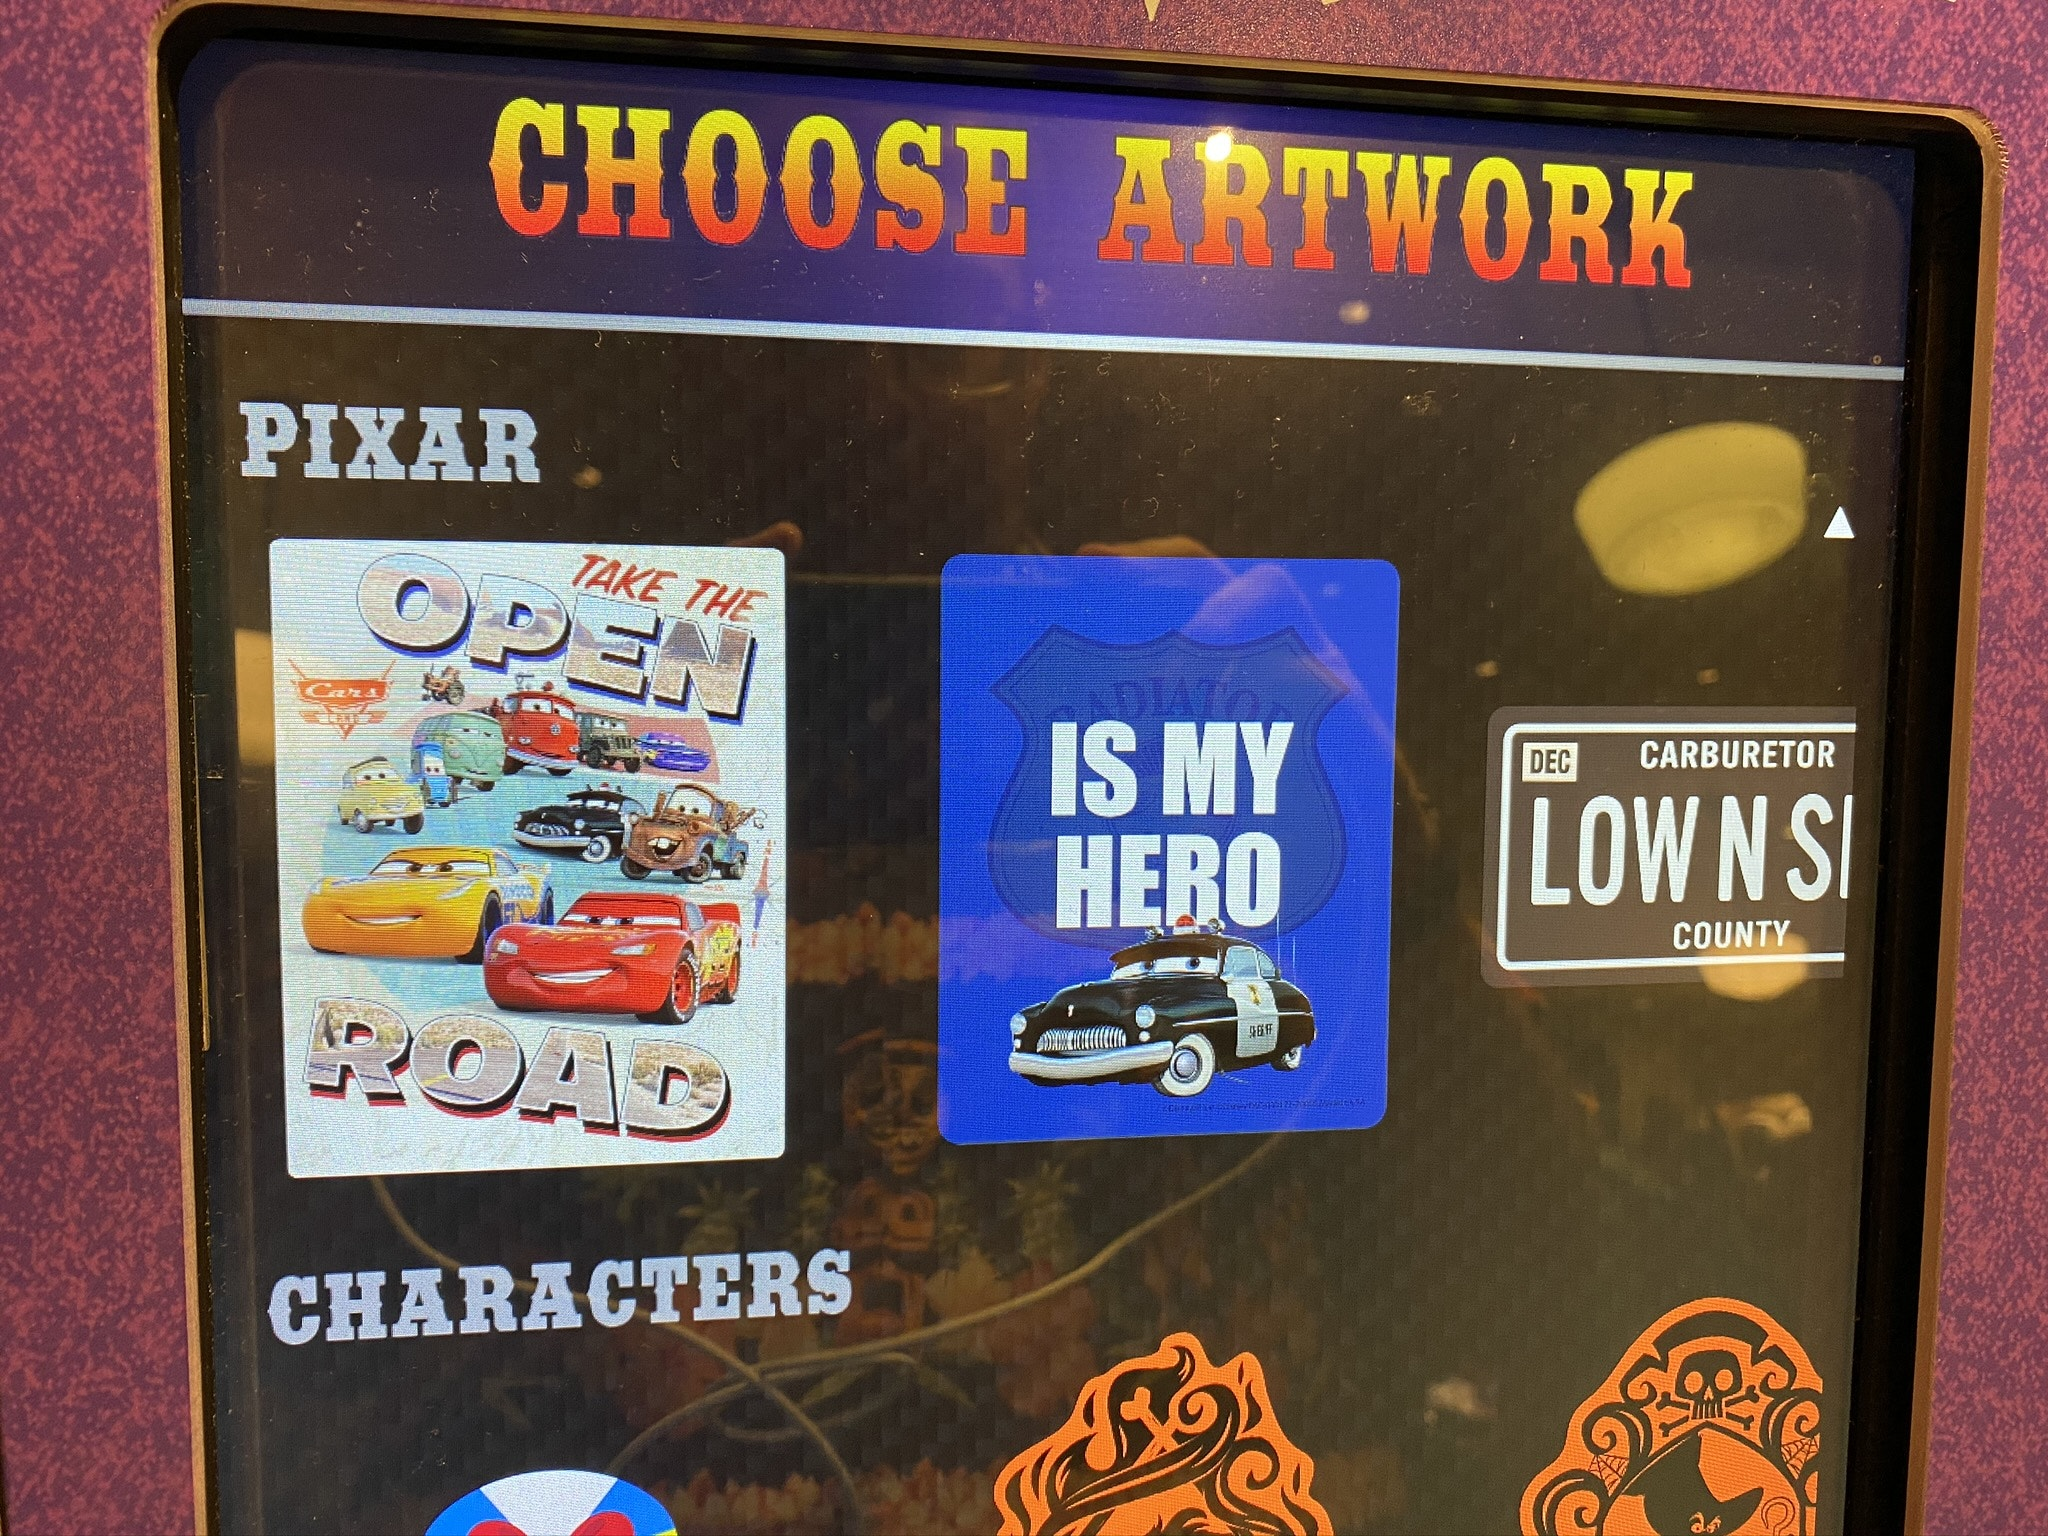 https://wdwnt.com/2020/02/photos-new-made-by-you-t-shirt-customization-kiosk-debuts-at-disney-springs/